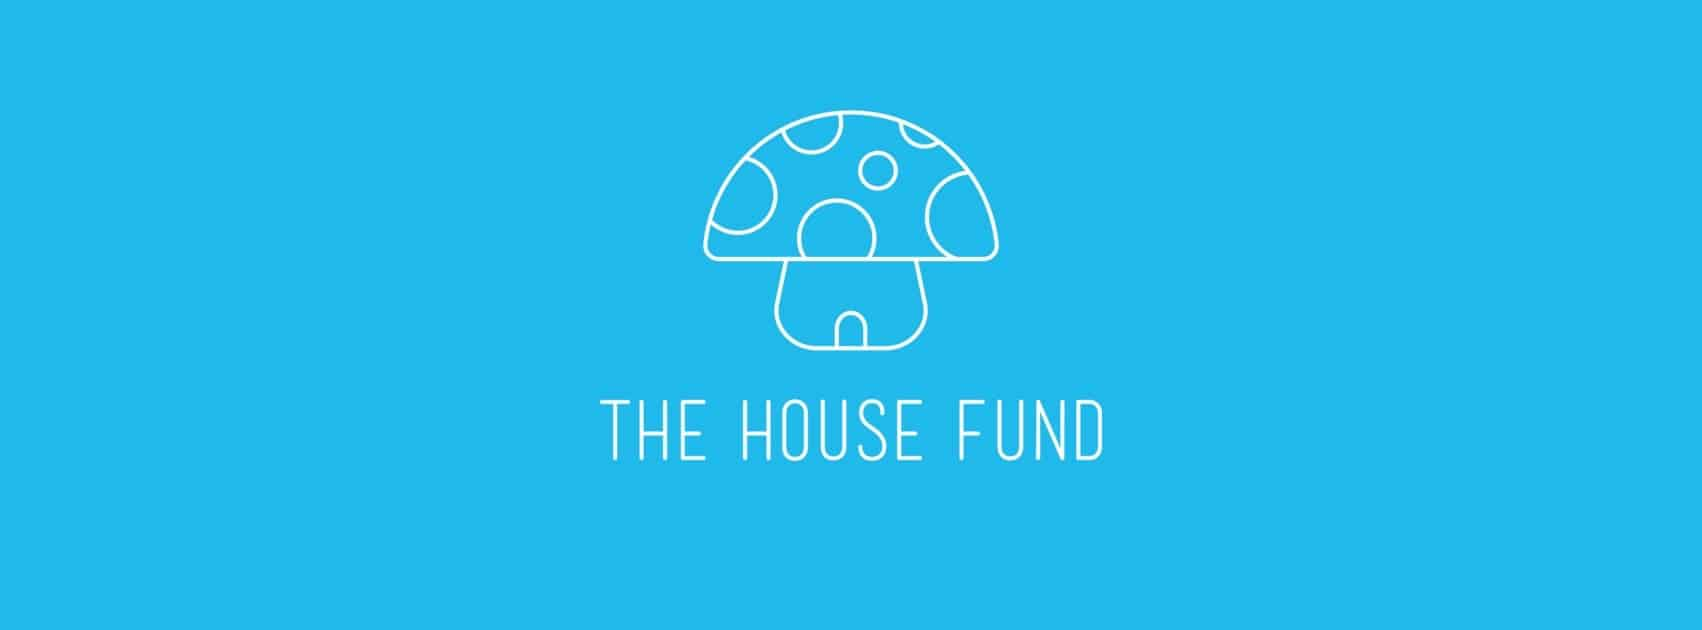 Thehouse fund logo